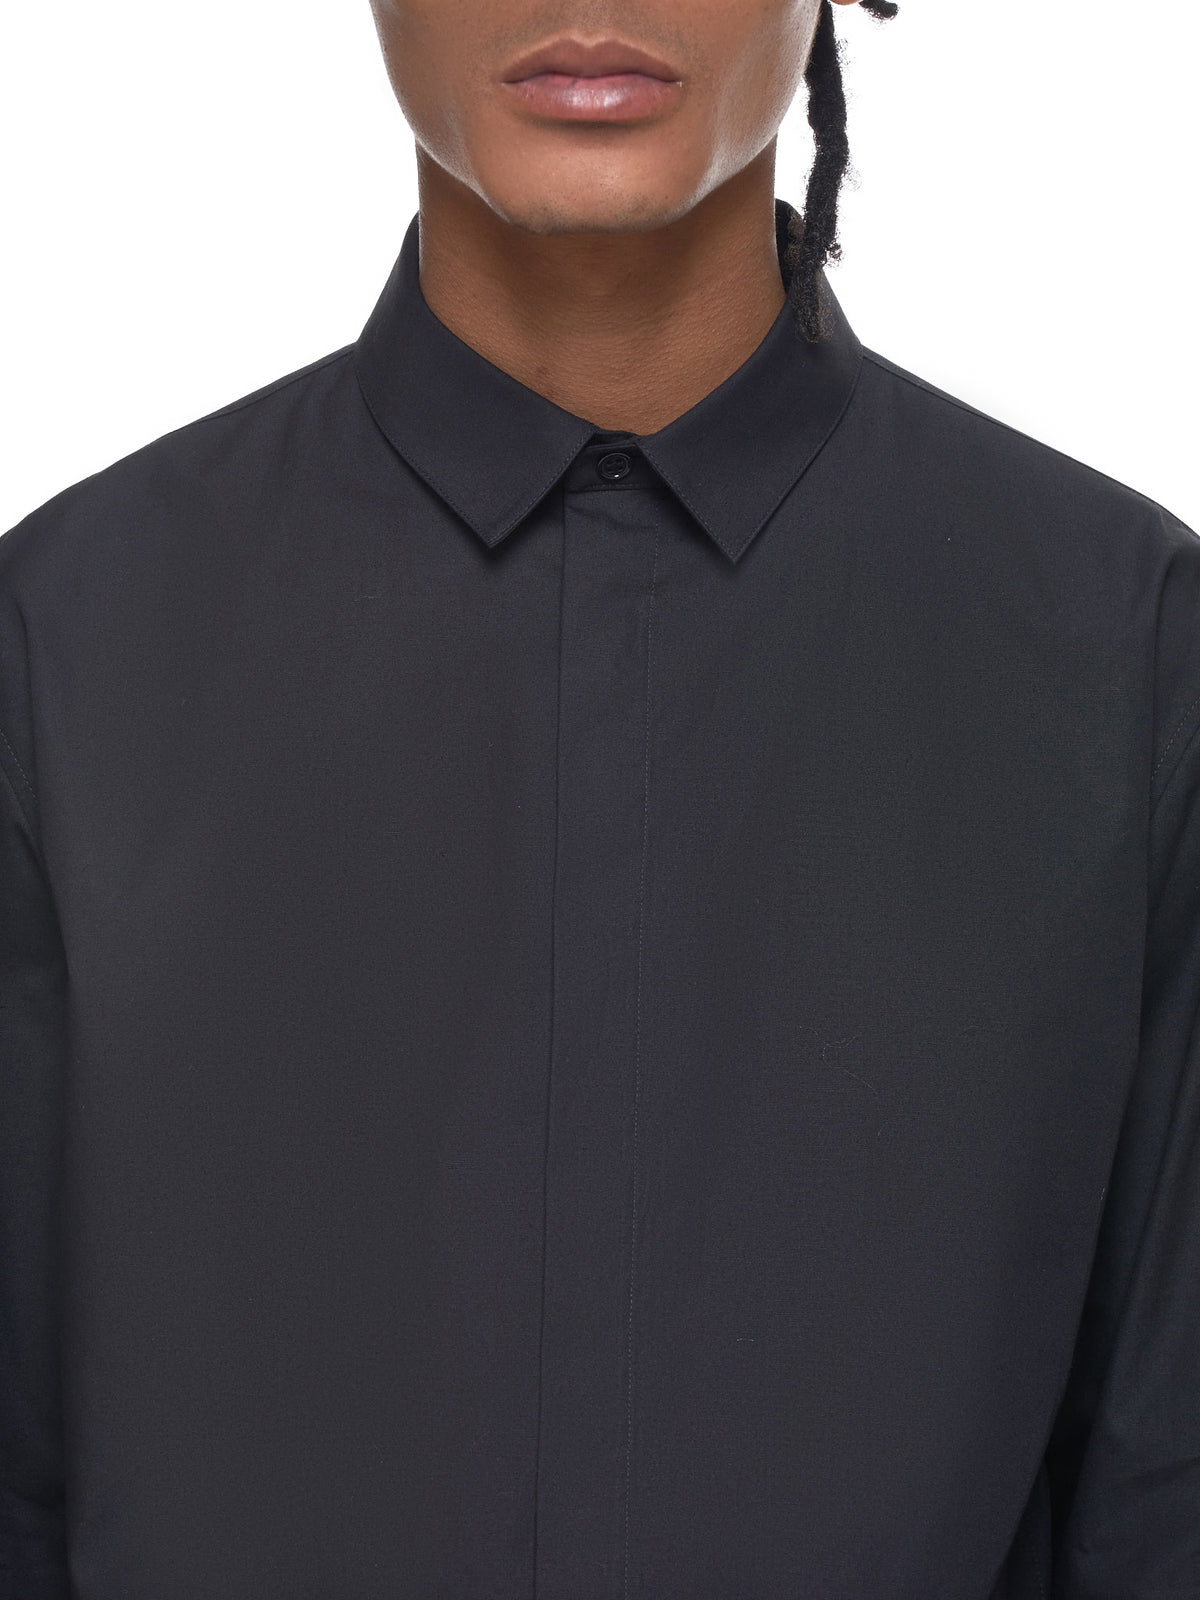 Haider Ackermann Black Shirt - Hlorenzo Detail 2